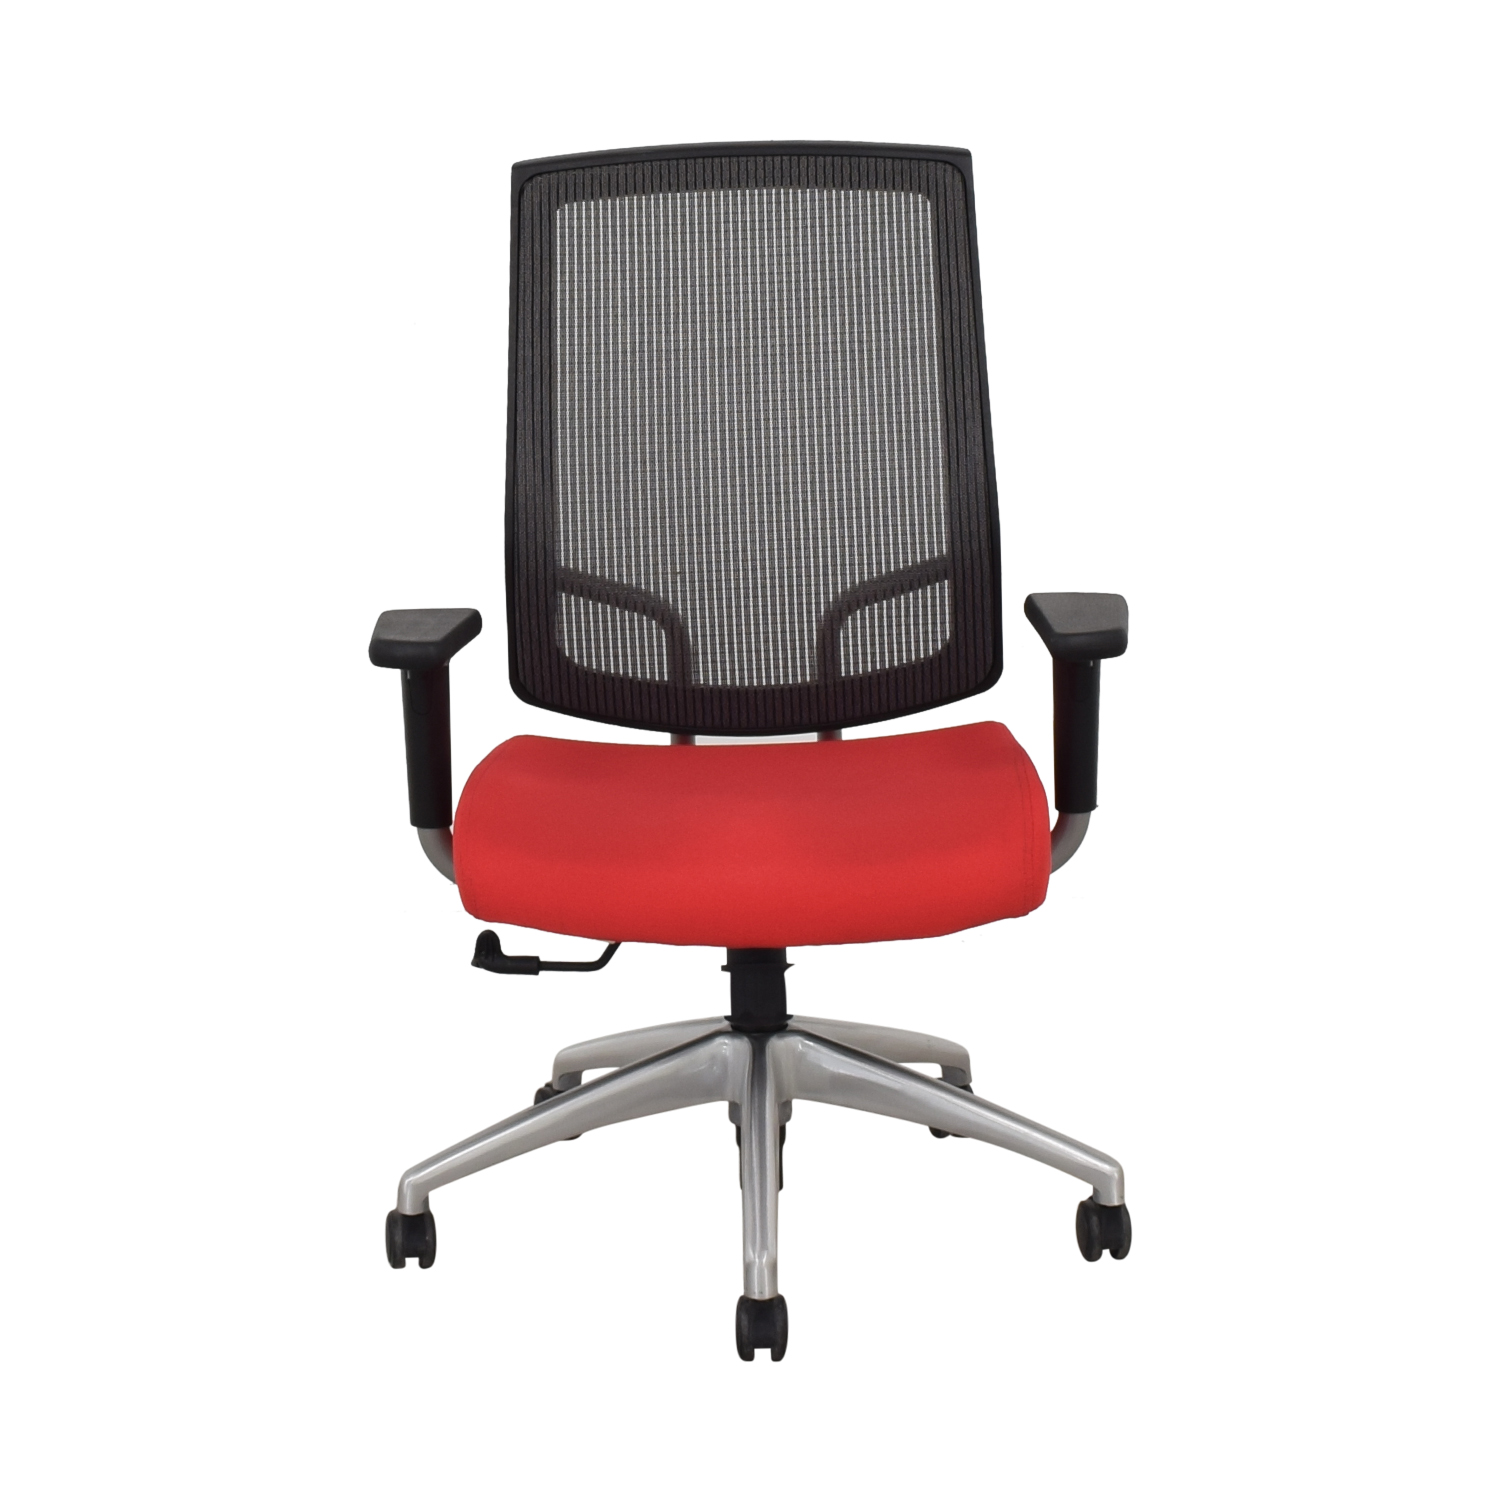 SitOnIt SitOnIt Focus High Back Office Chair coupon